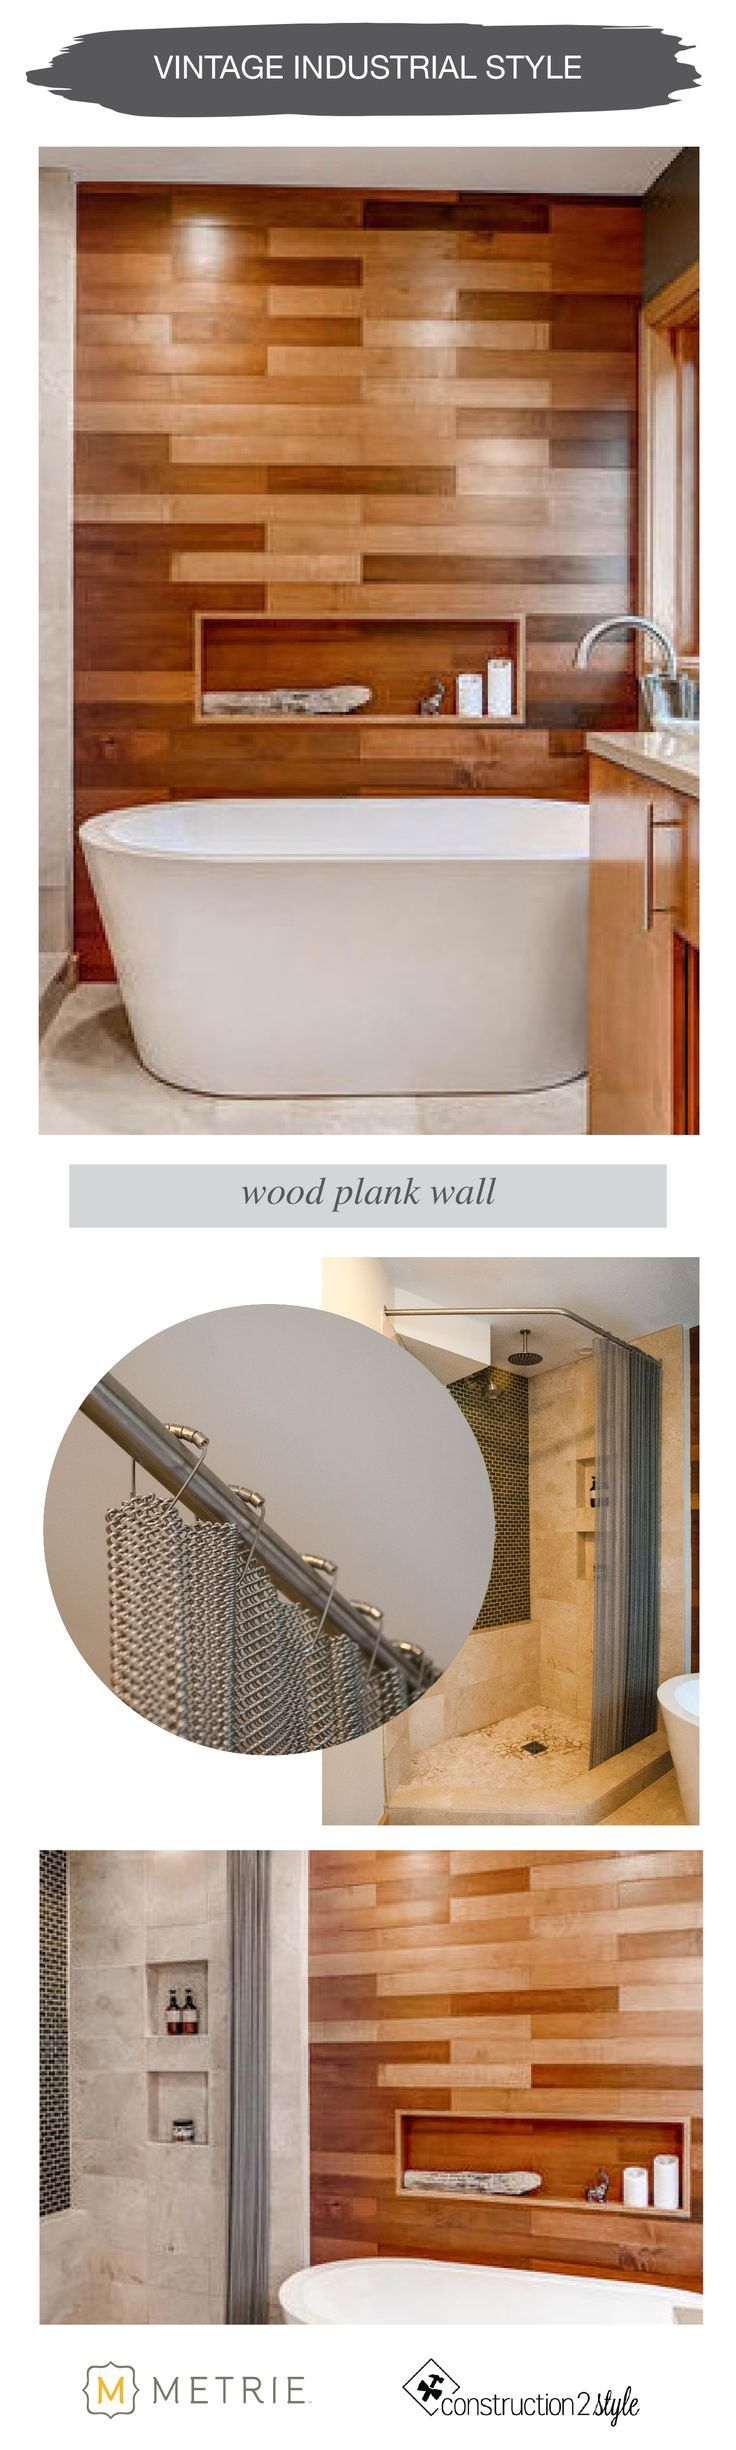 Vintage Industrial Style | wood plank wall | Metrie Option {M} + construction2style